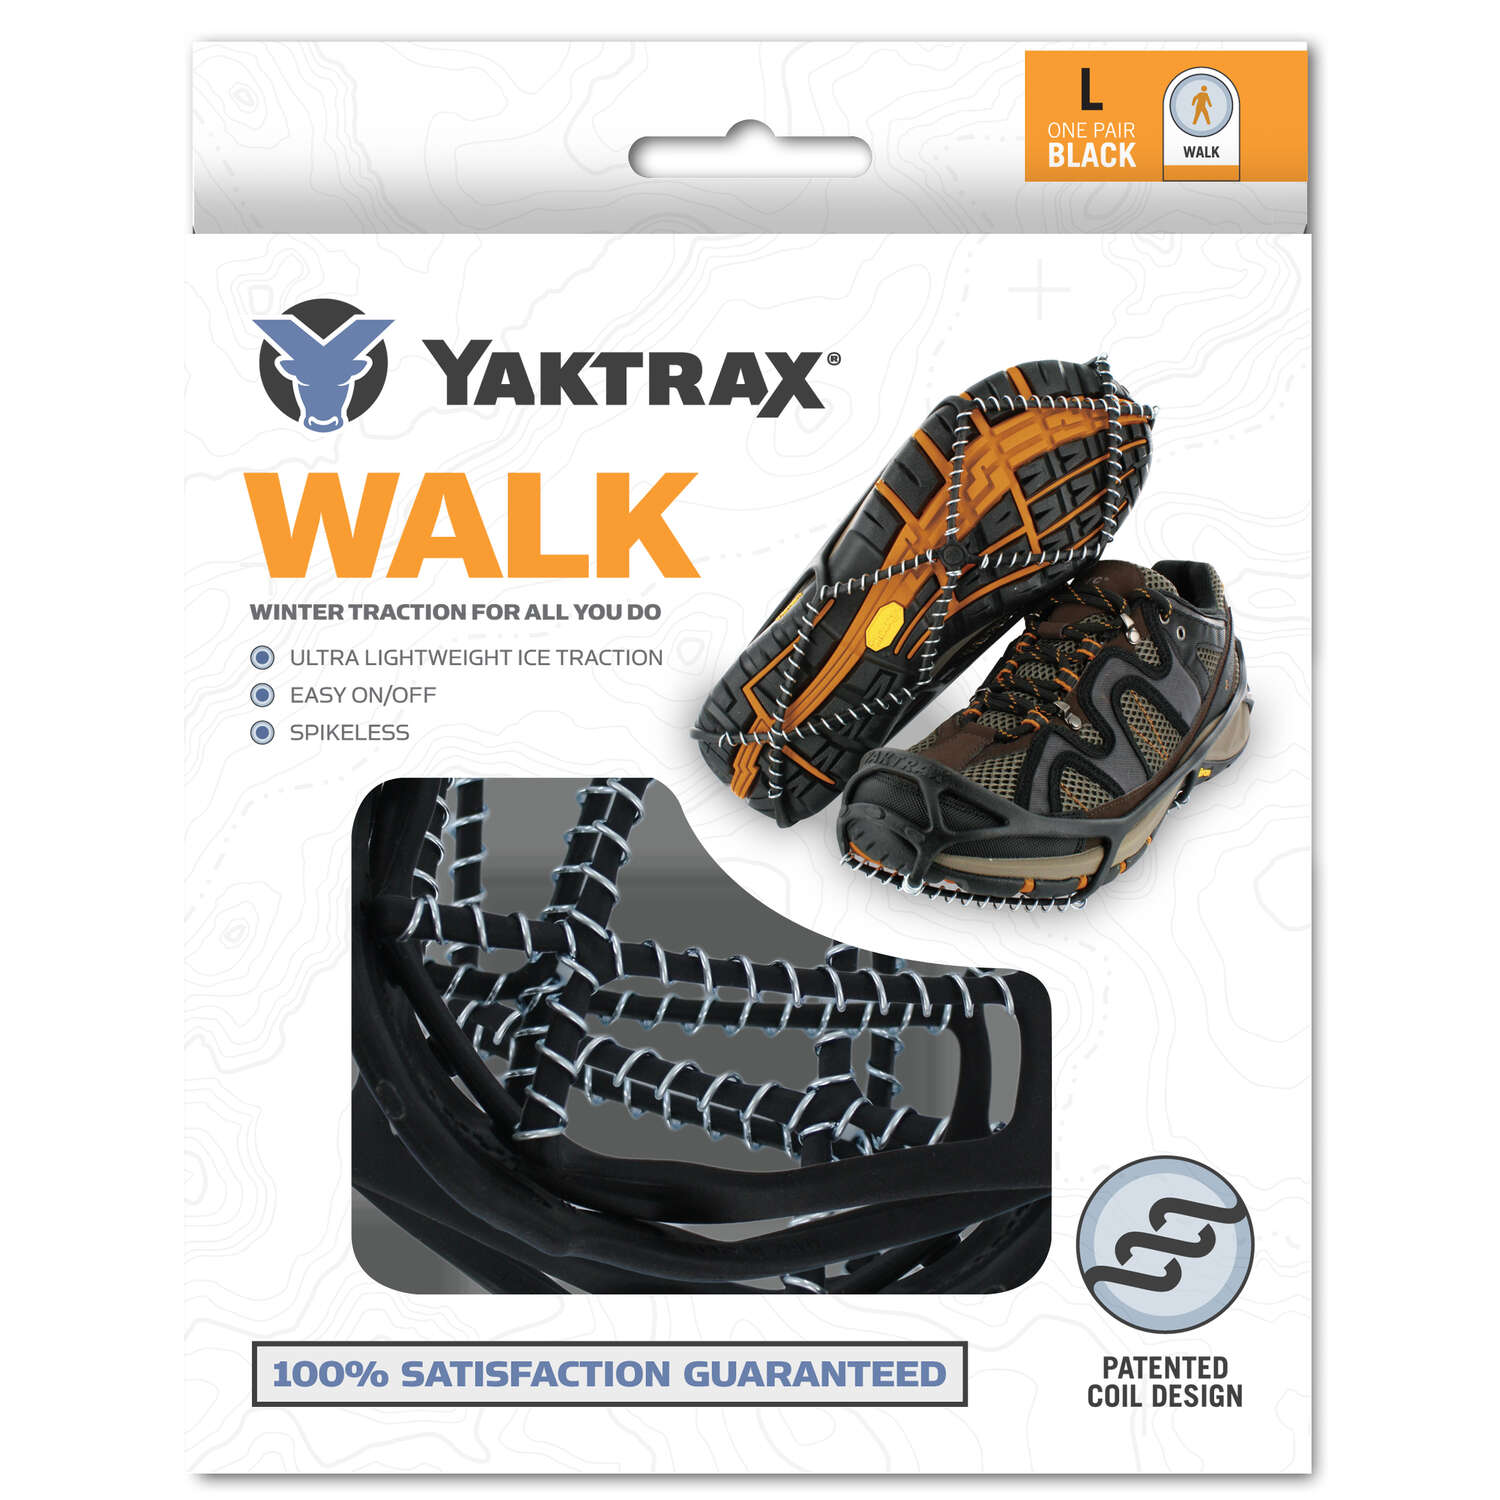 Yaktrax  WALK  Unisex  Poly Elastomer Blend/Steel  Traction Device  Black  W 10.5-12.5/M 9-11  1 pai